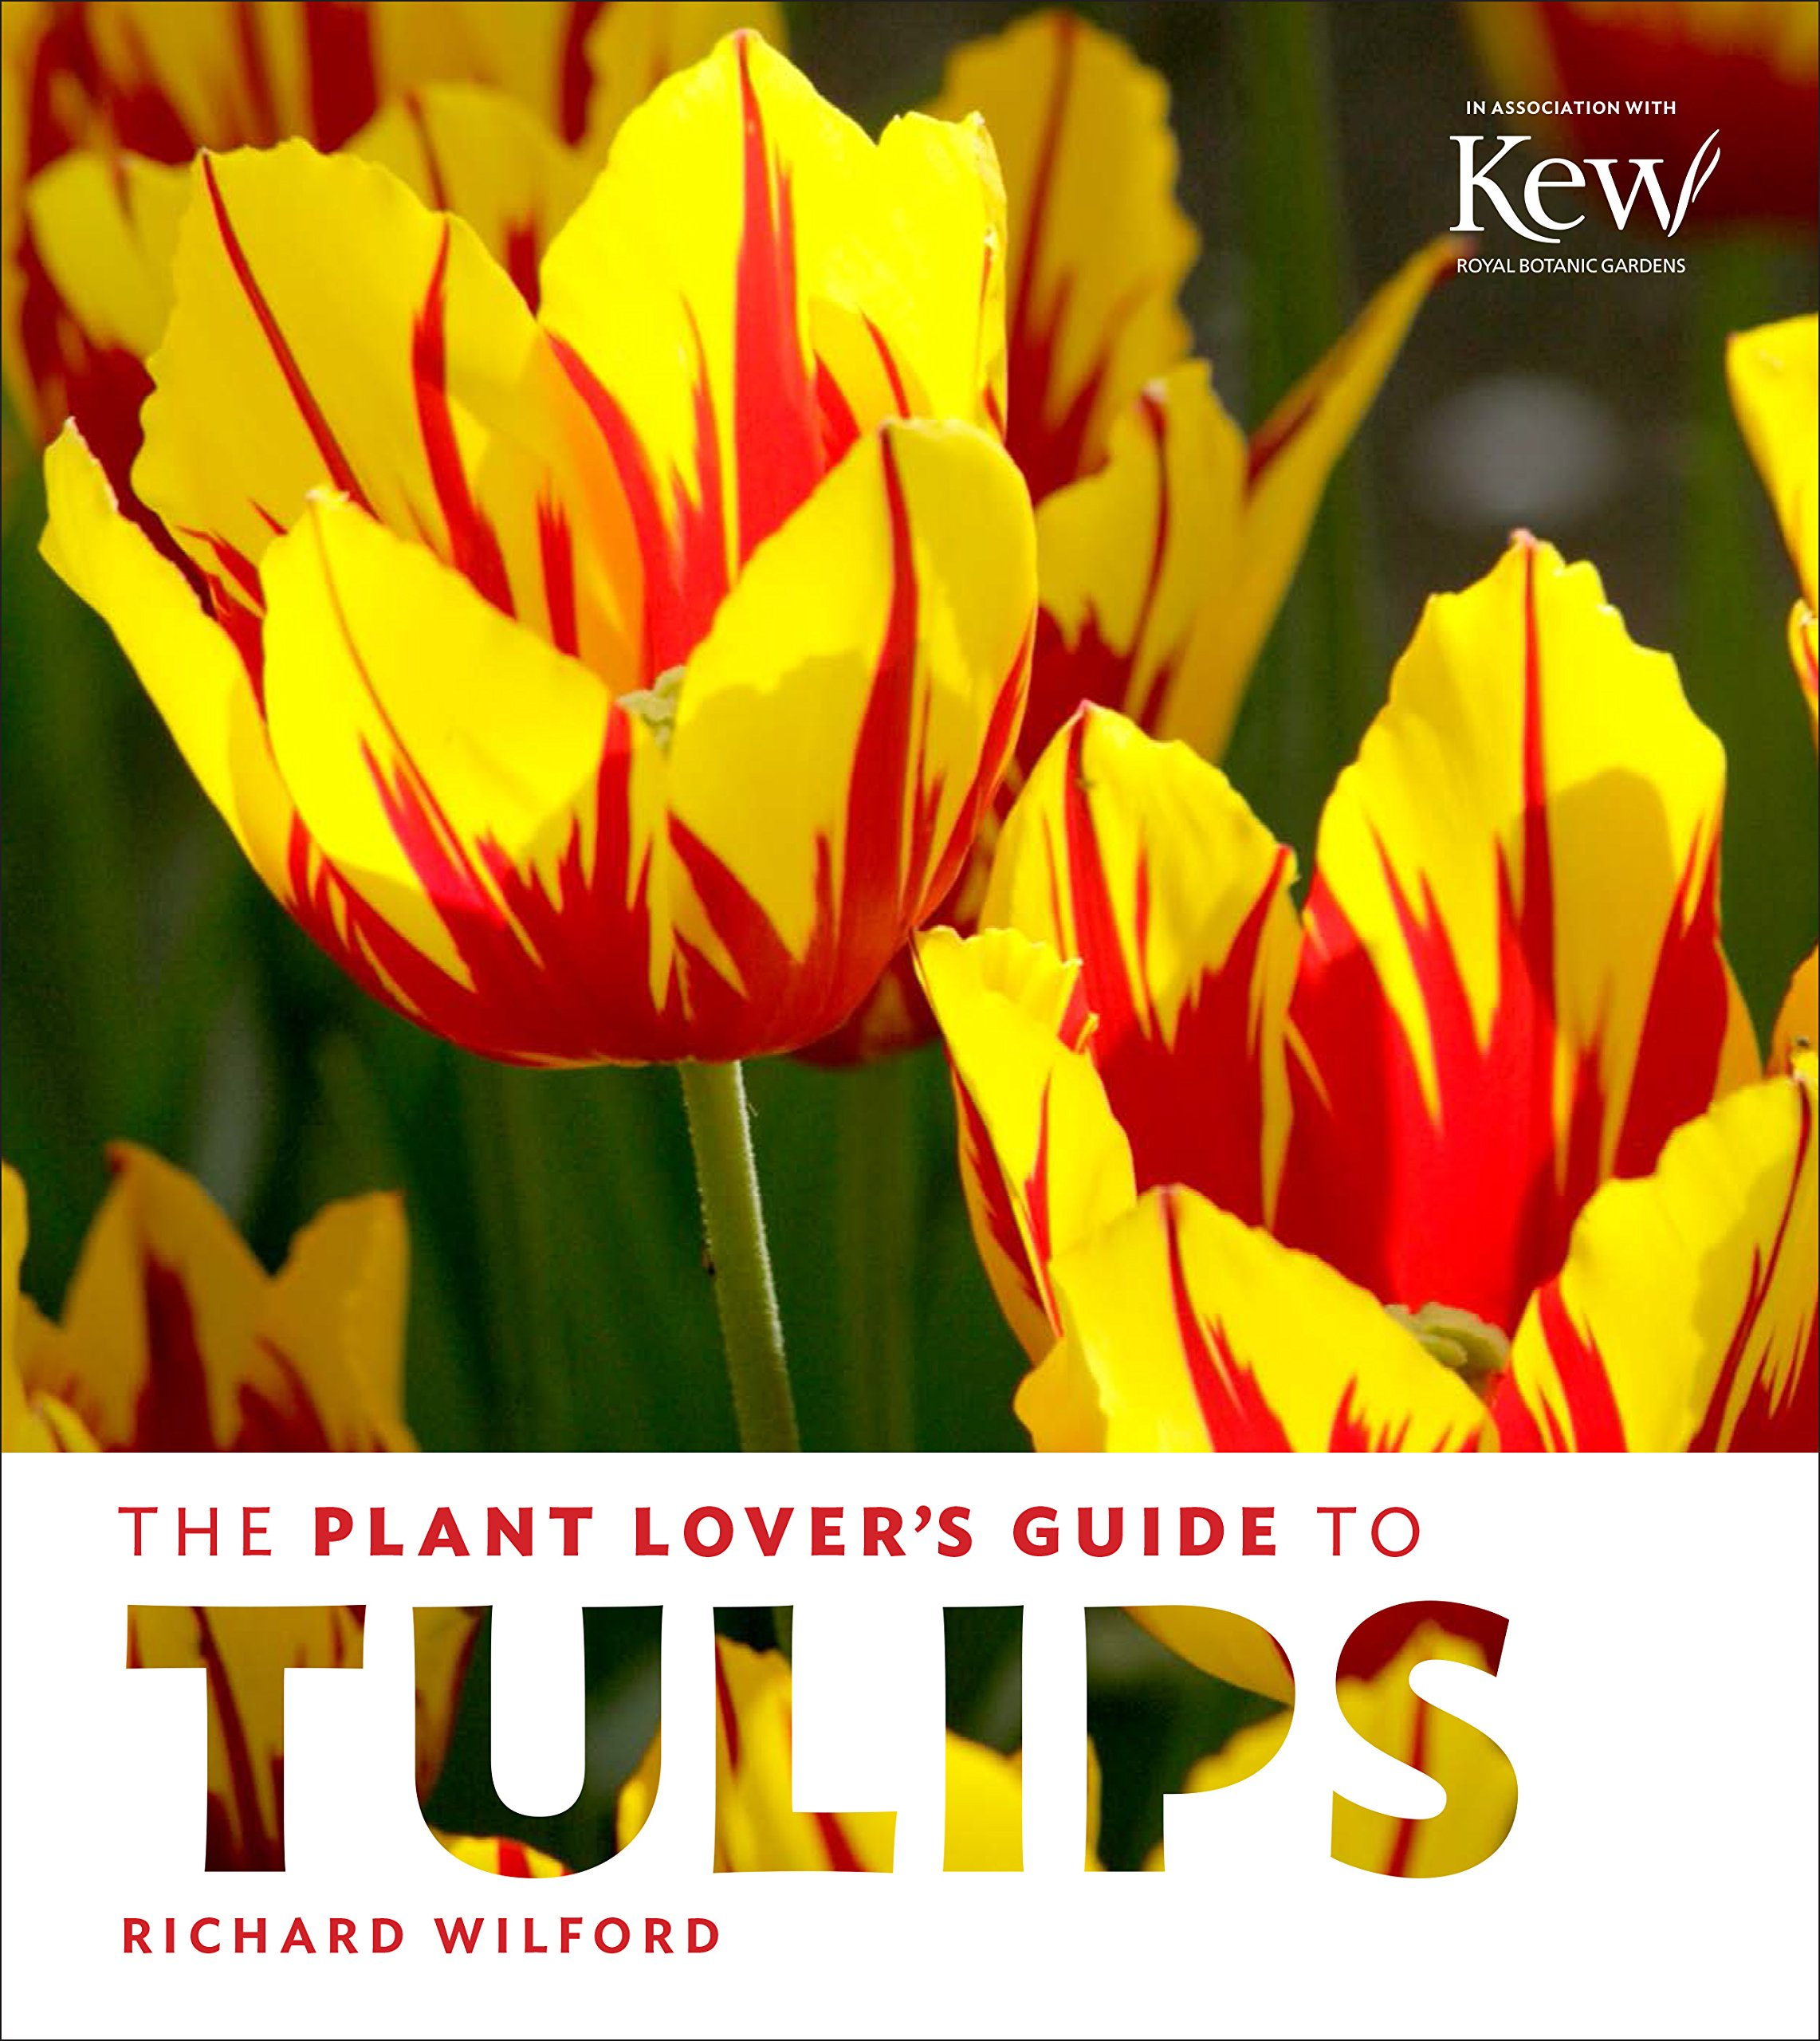 The Plant Lover's Guide to Tulips (The Plant Lover's Guides) by Timber Press